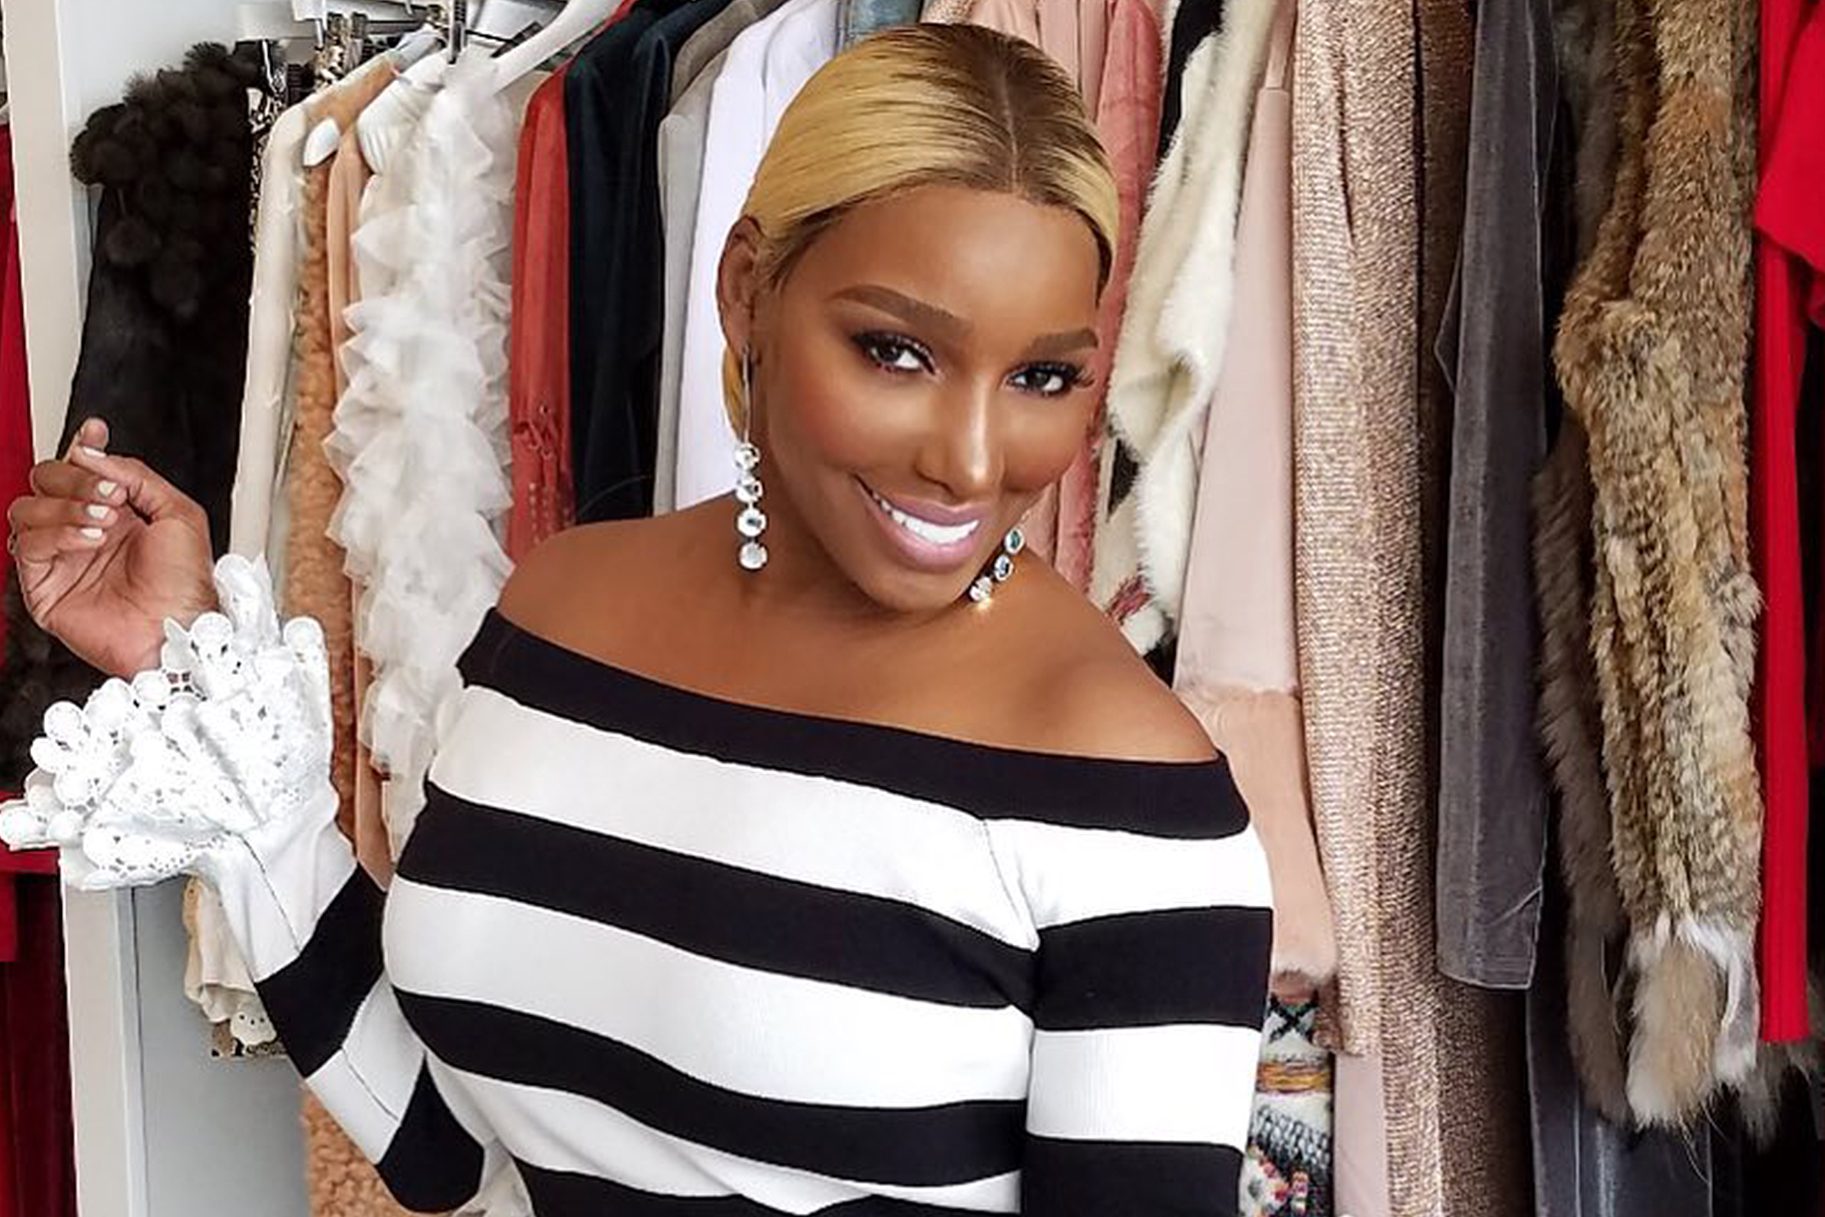 NeNe Leakes Proudly Shares New Images From The New Location Of Her Swagg Boutique – People Are Excited To Check Out The New Store Are MGM